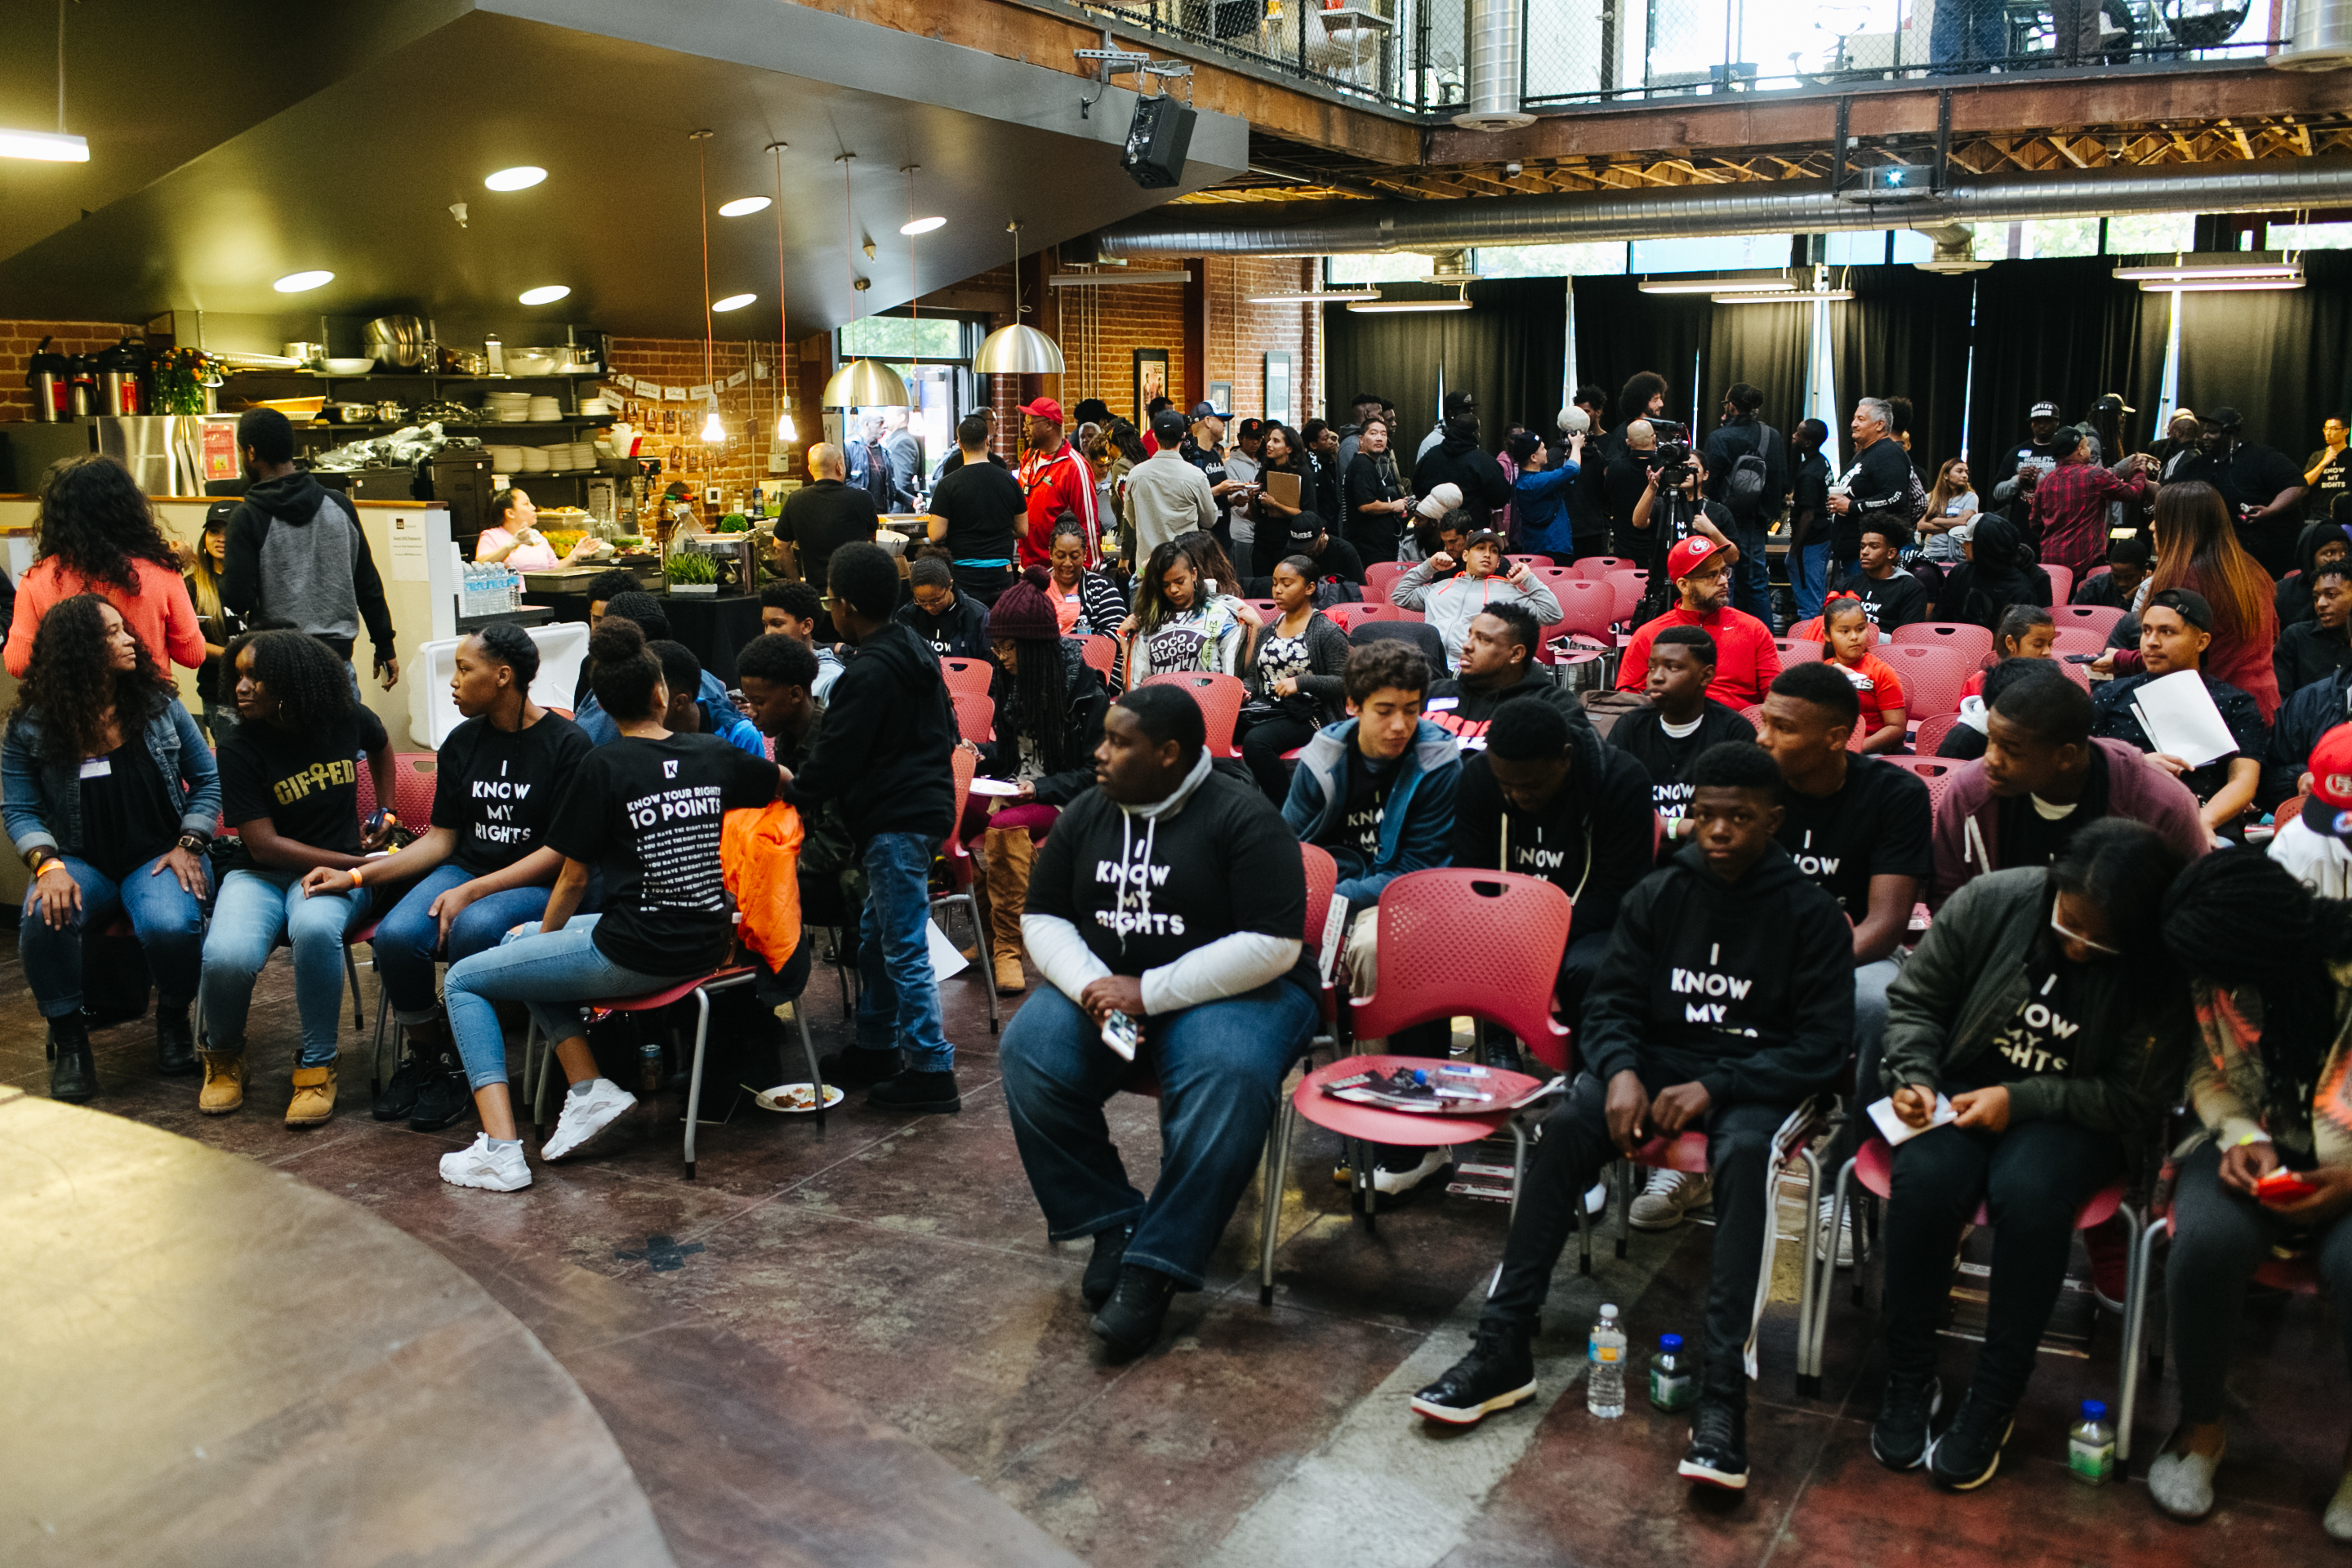 Invited children and teenagers sit while waiting for the event to begin at the HUB Oakland on September 29, 2016.